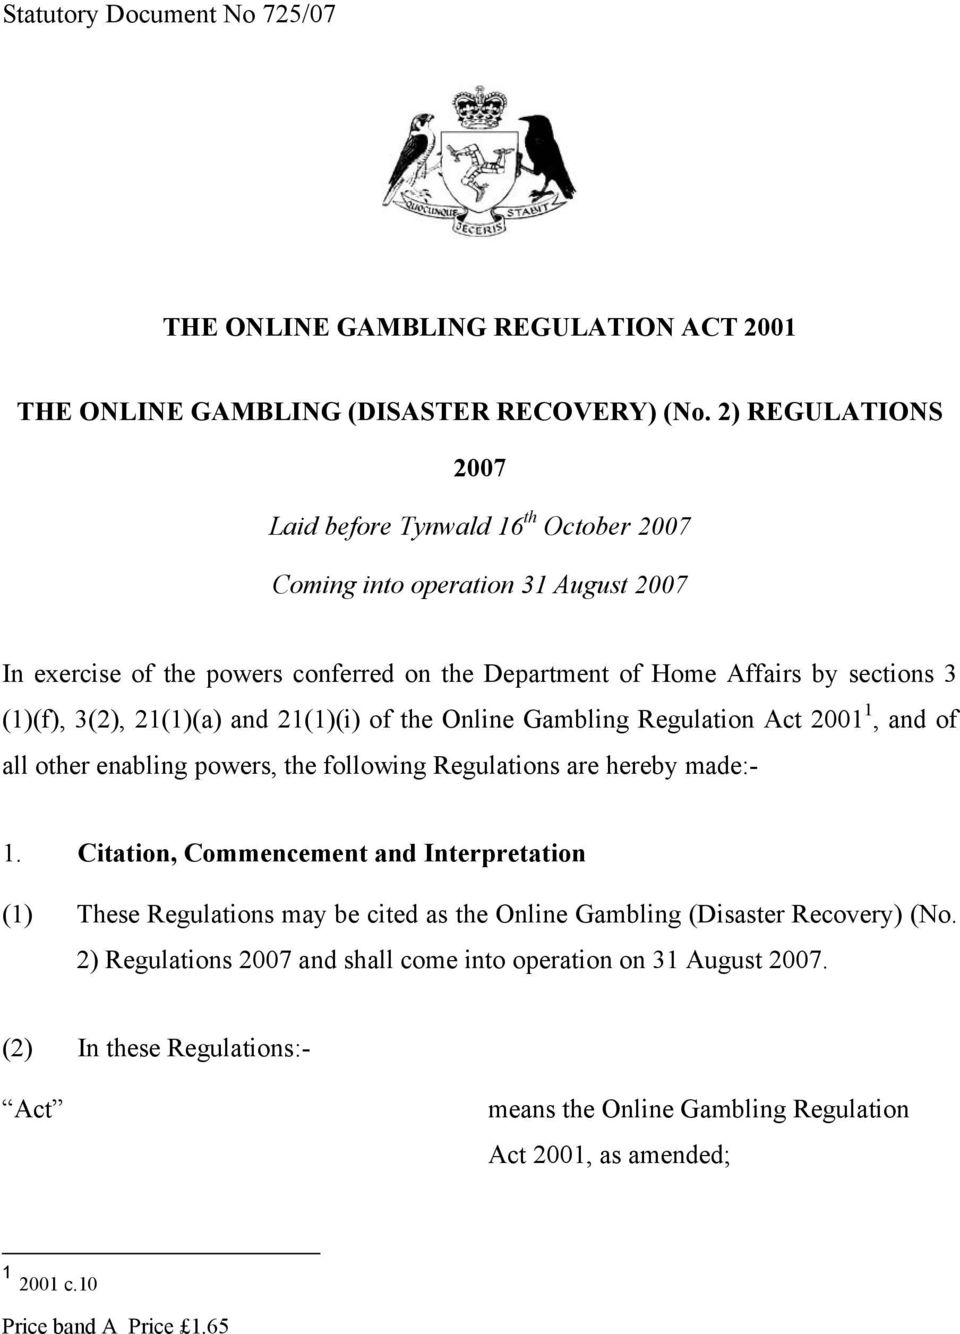 21(1)(a) and 21(1)(i) of the Online Gambling Regulation Act 2001 1, and of all other enabling powers, the following Regulations are hereby made:- 1.